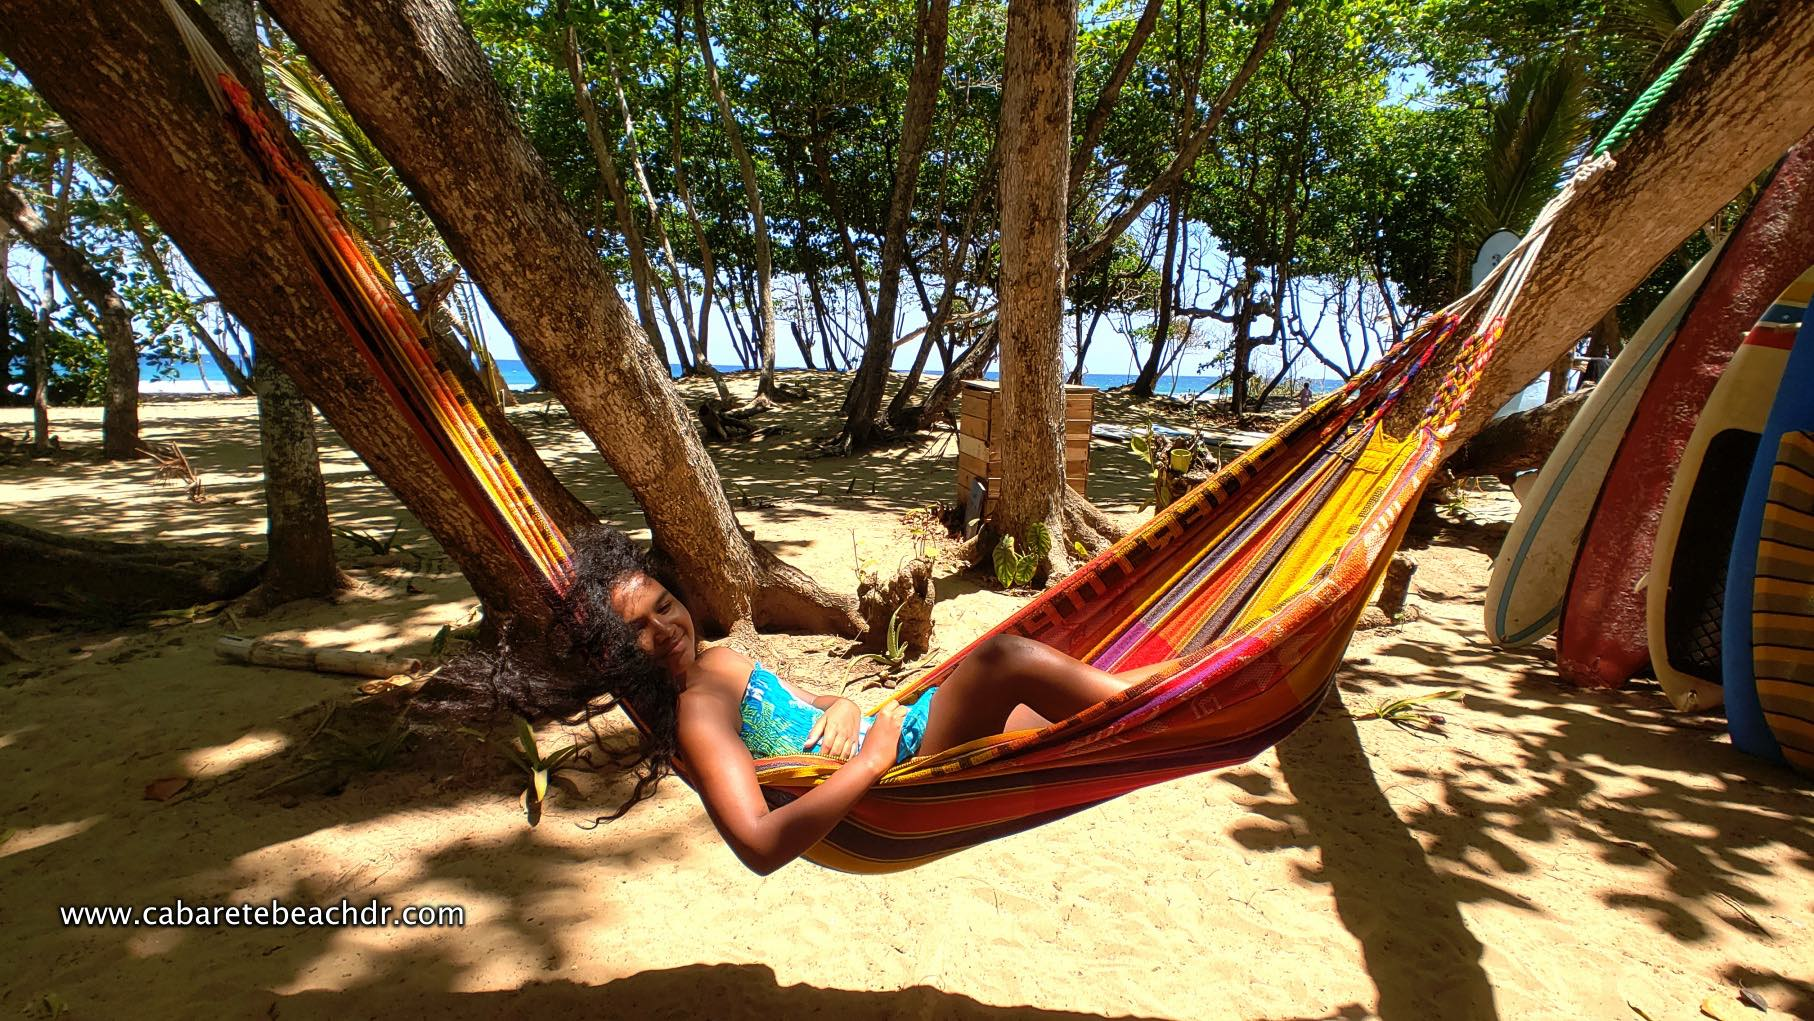 Young girl relaxing in hammock